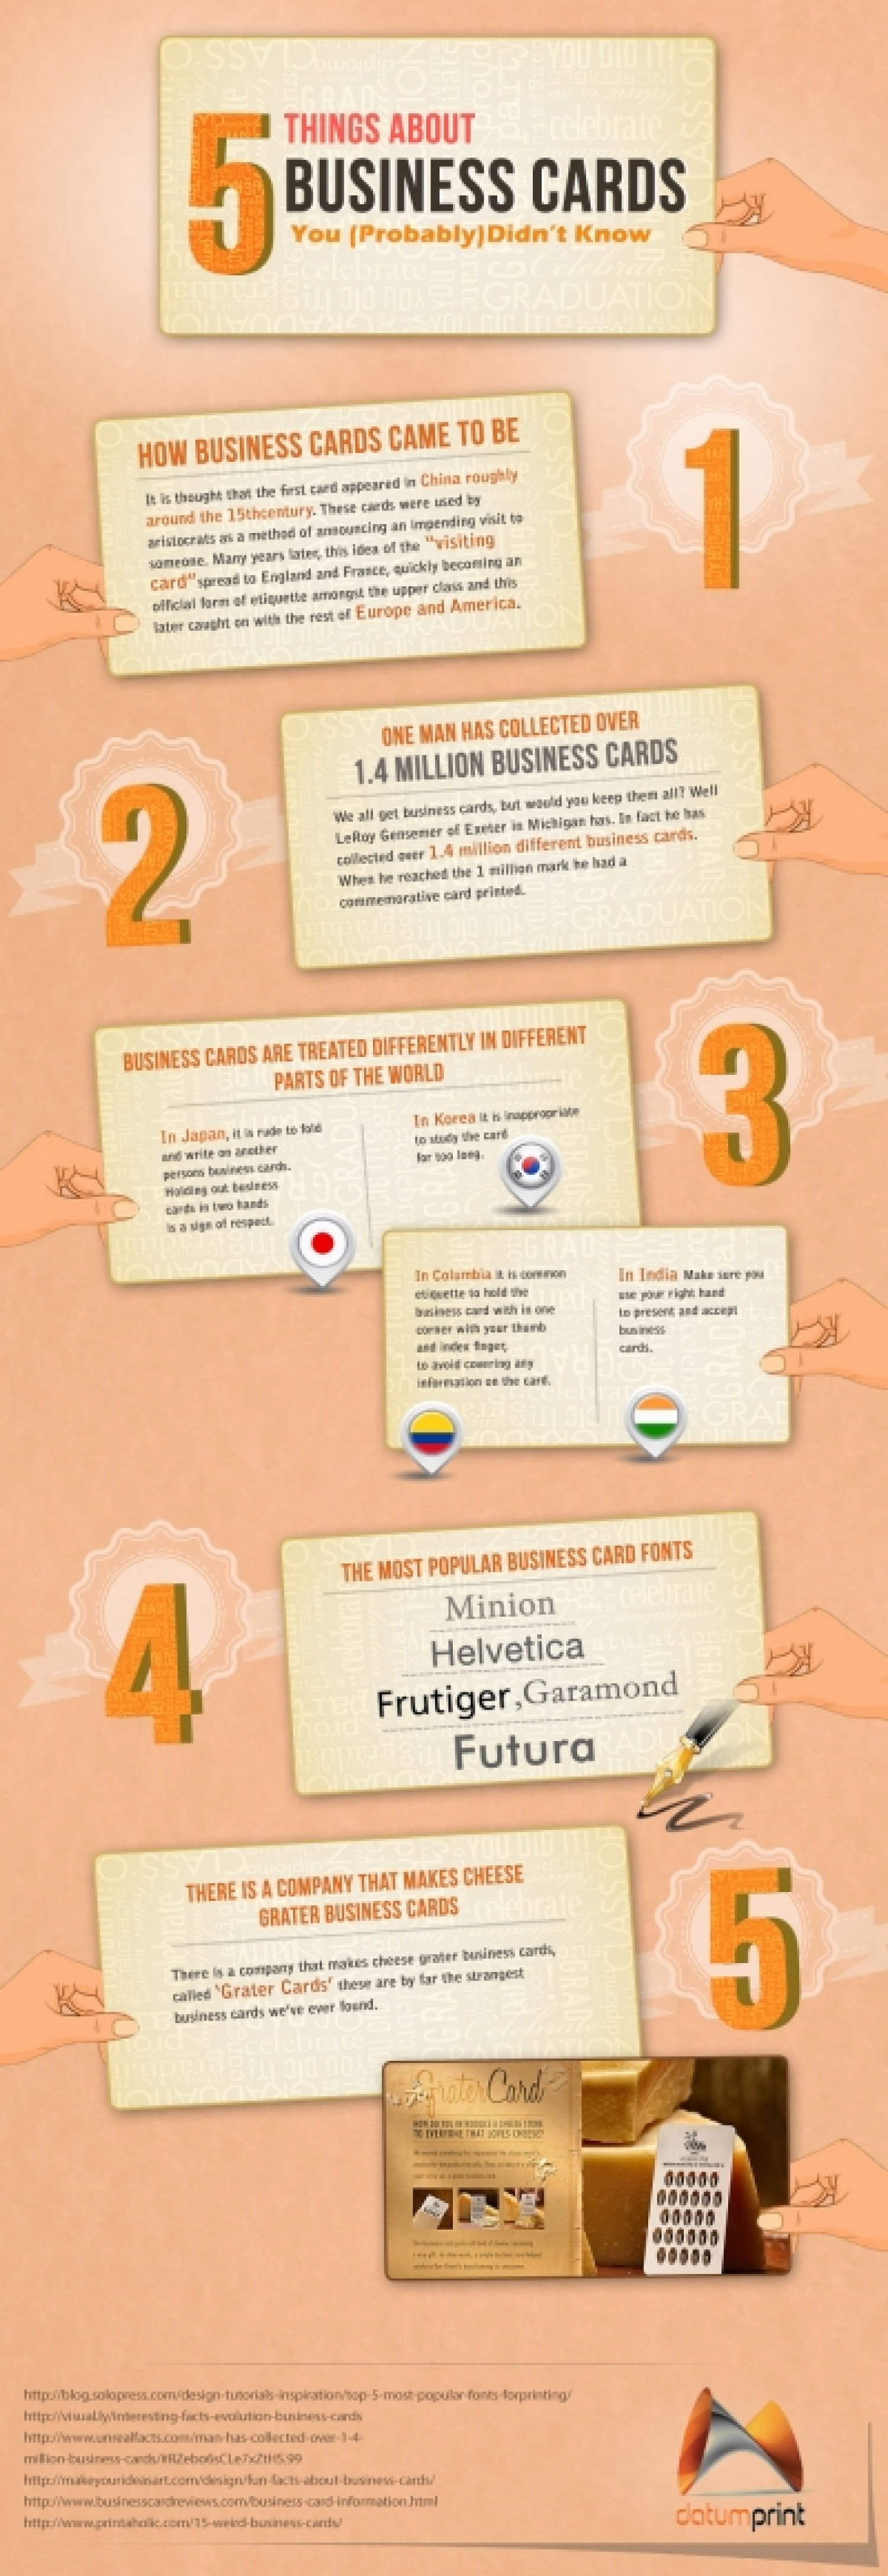 5 Things About Business Cards You Probably Didn't Know Infographic